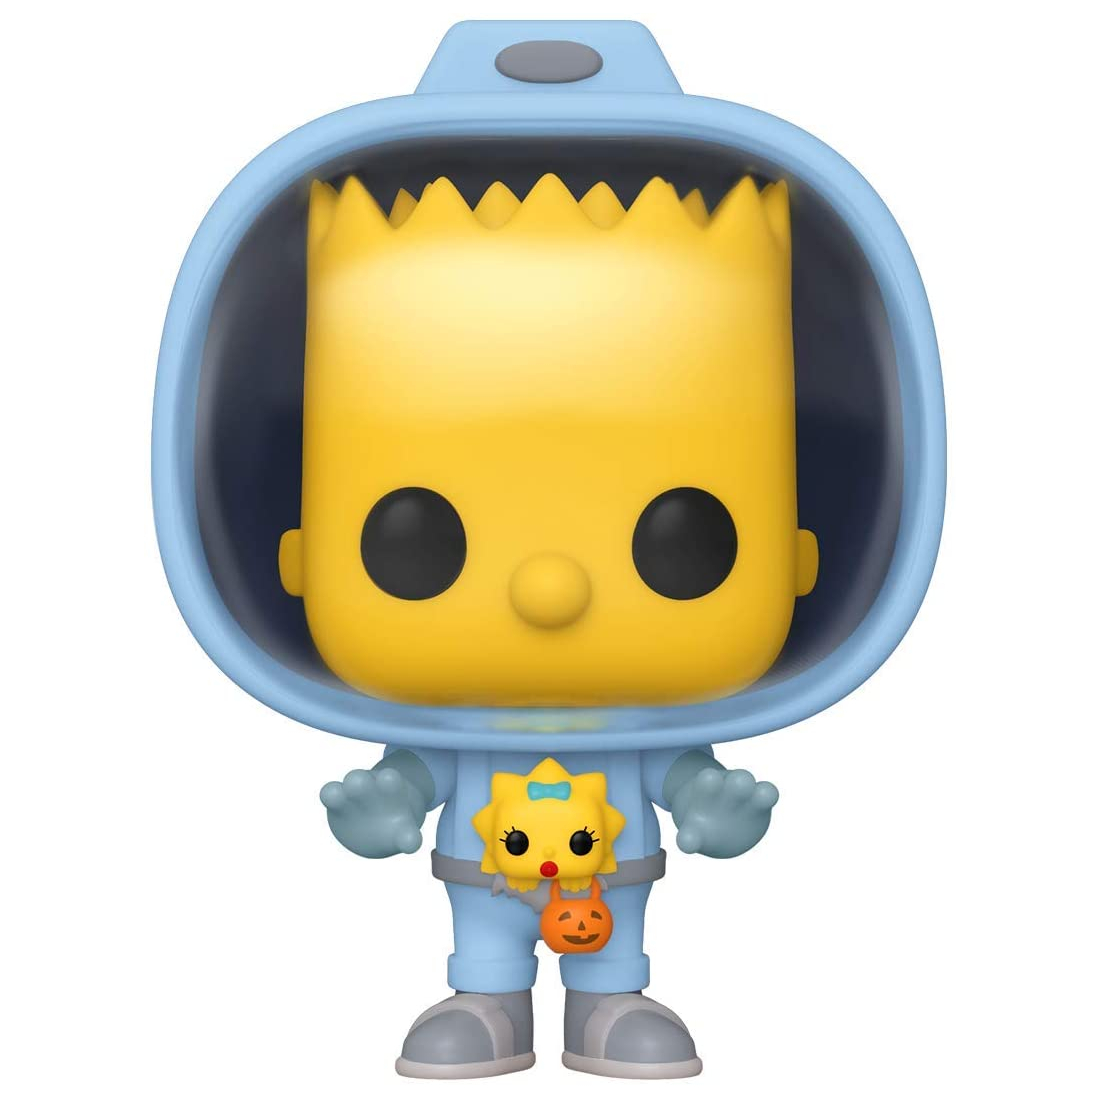 Funko Pop! Television The Simpsons: Theehouse of Horror 1026 Spaceman Bart